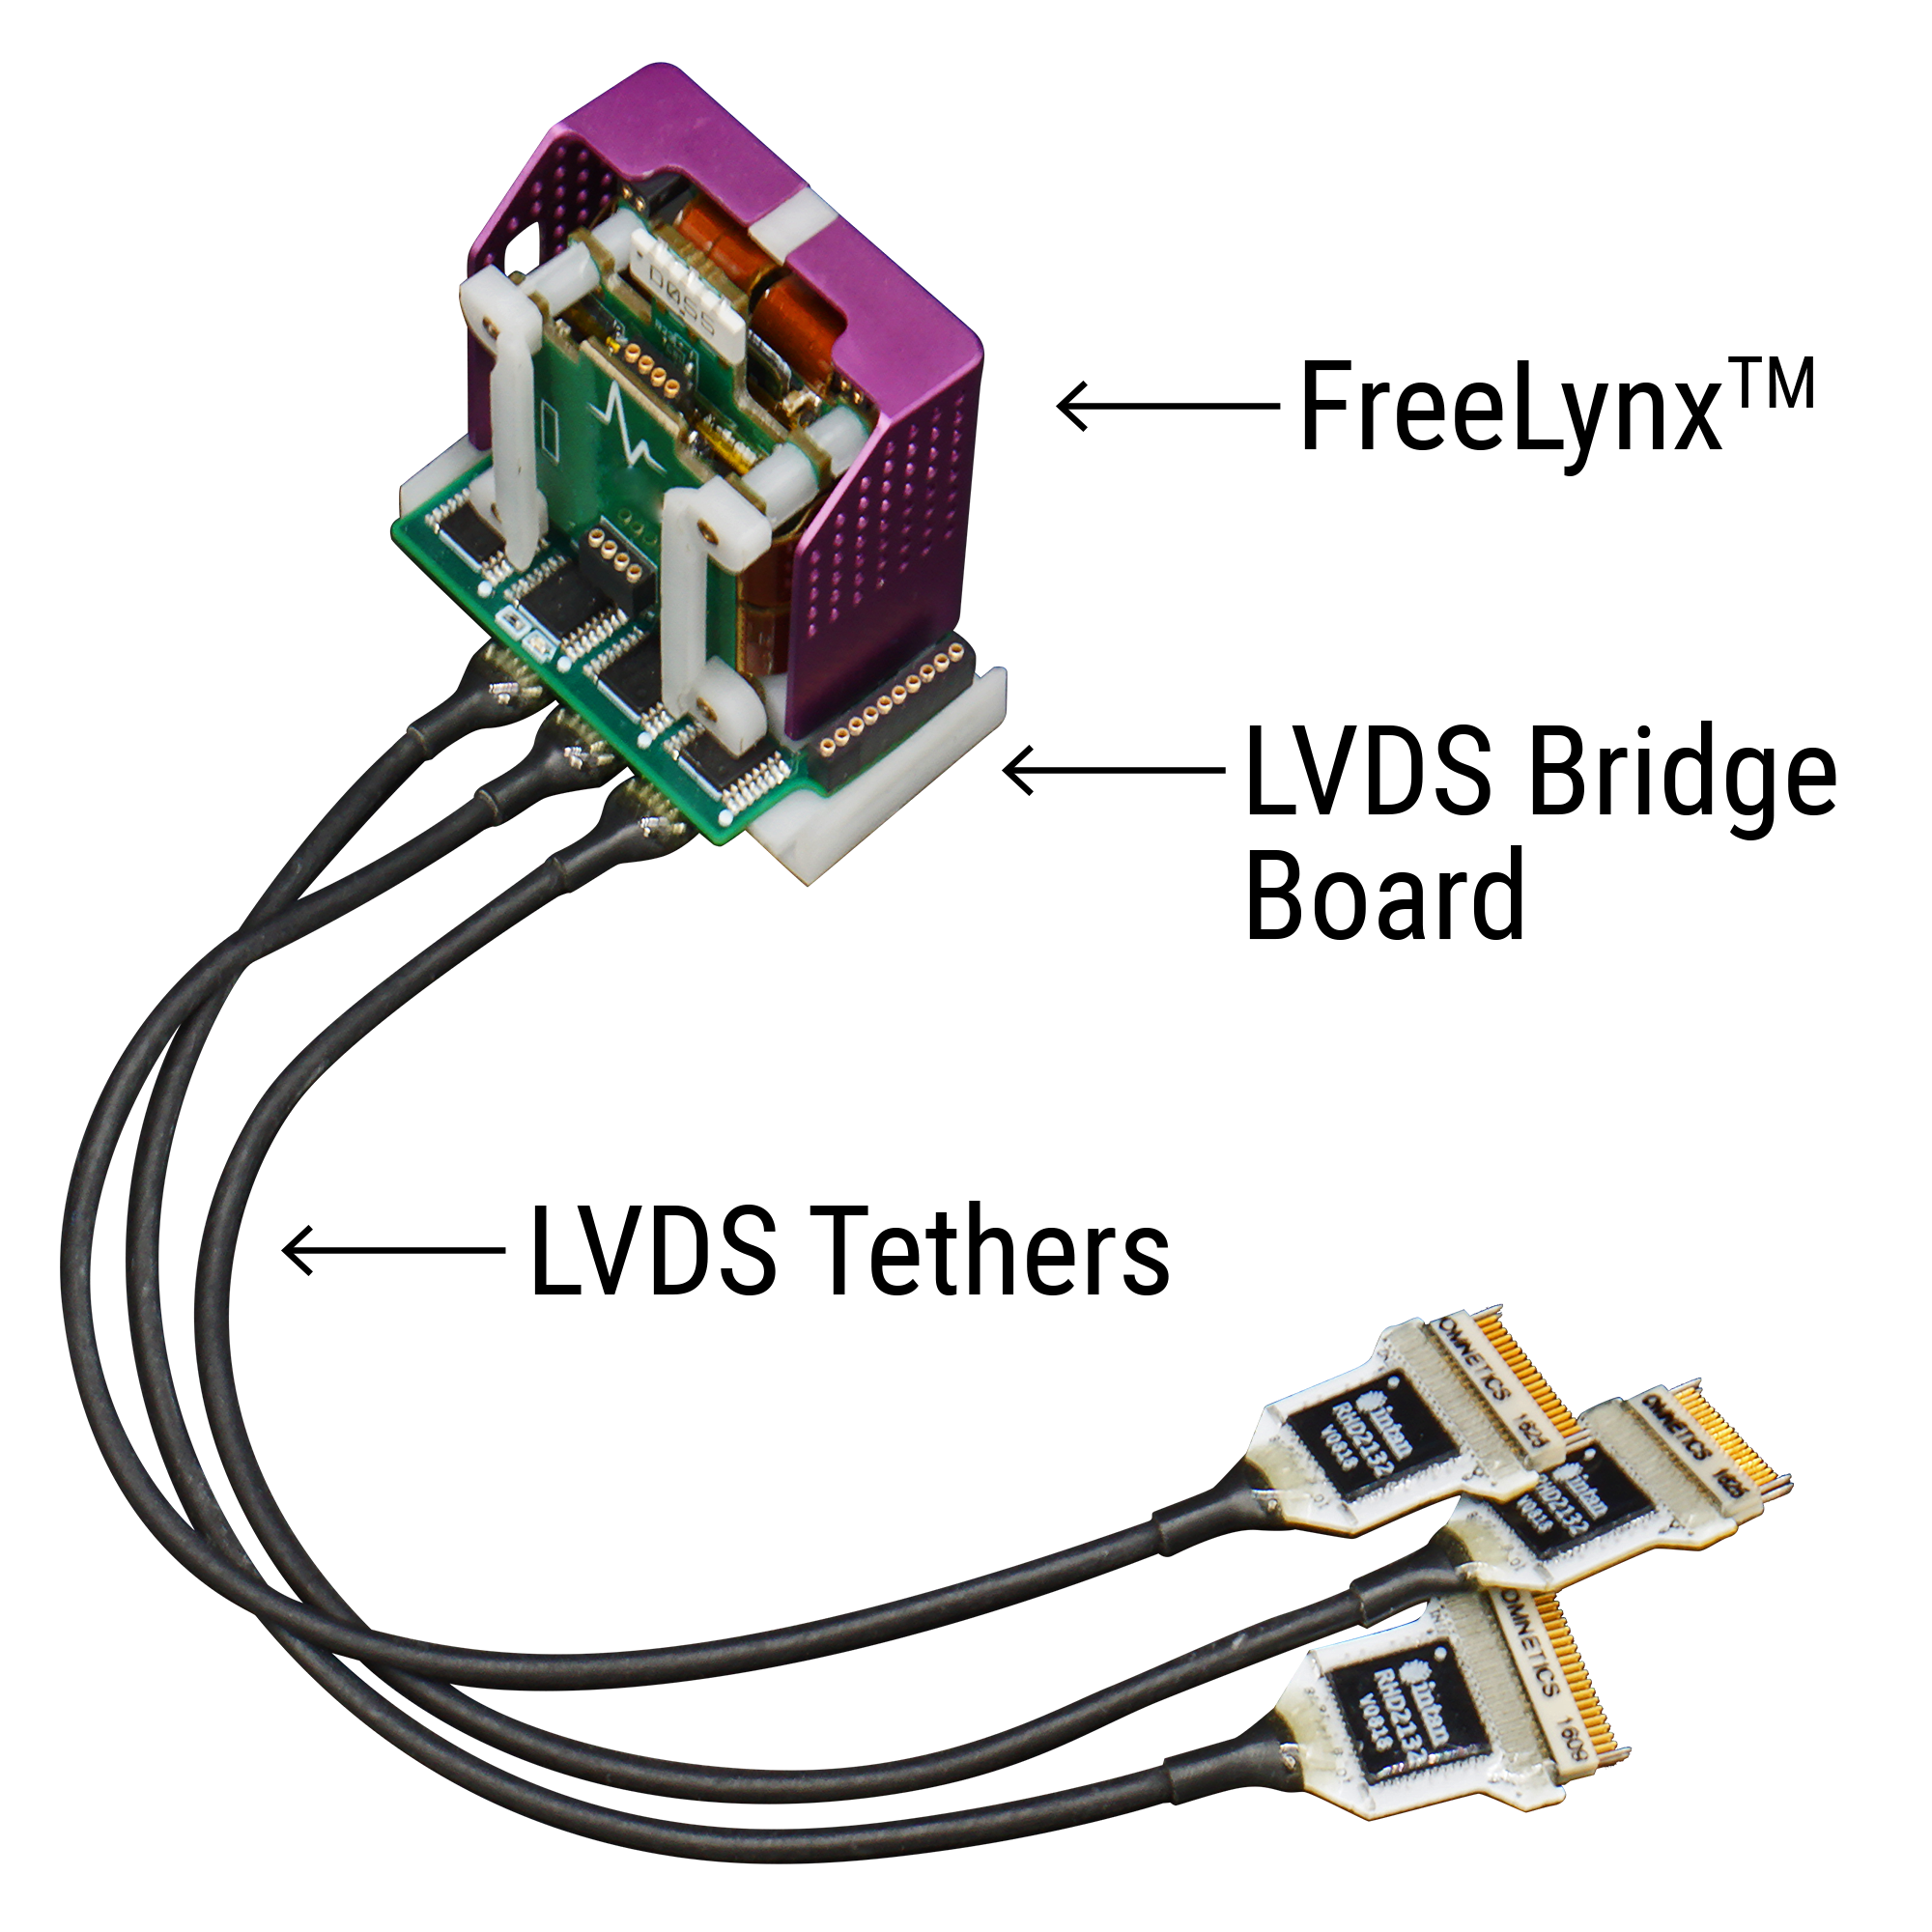 FreeLynx with 3 LVDS tethers for 96 neural probe channels